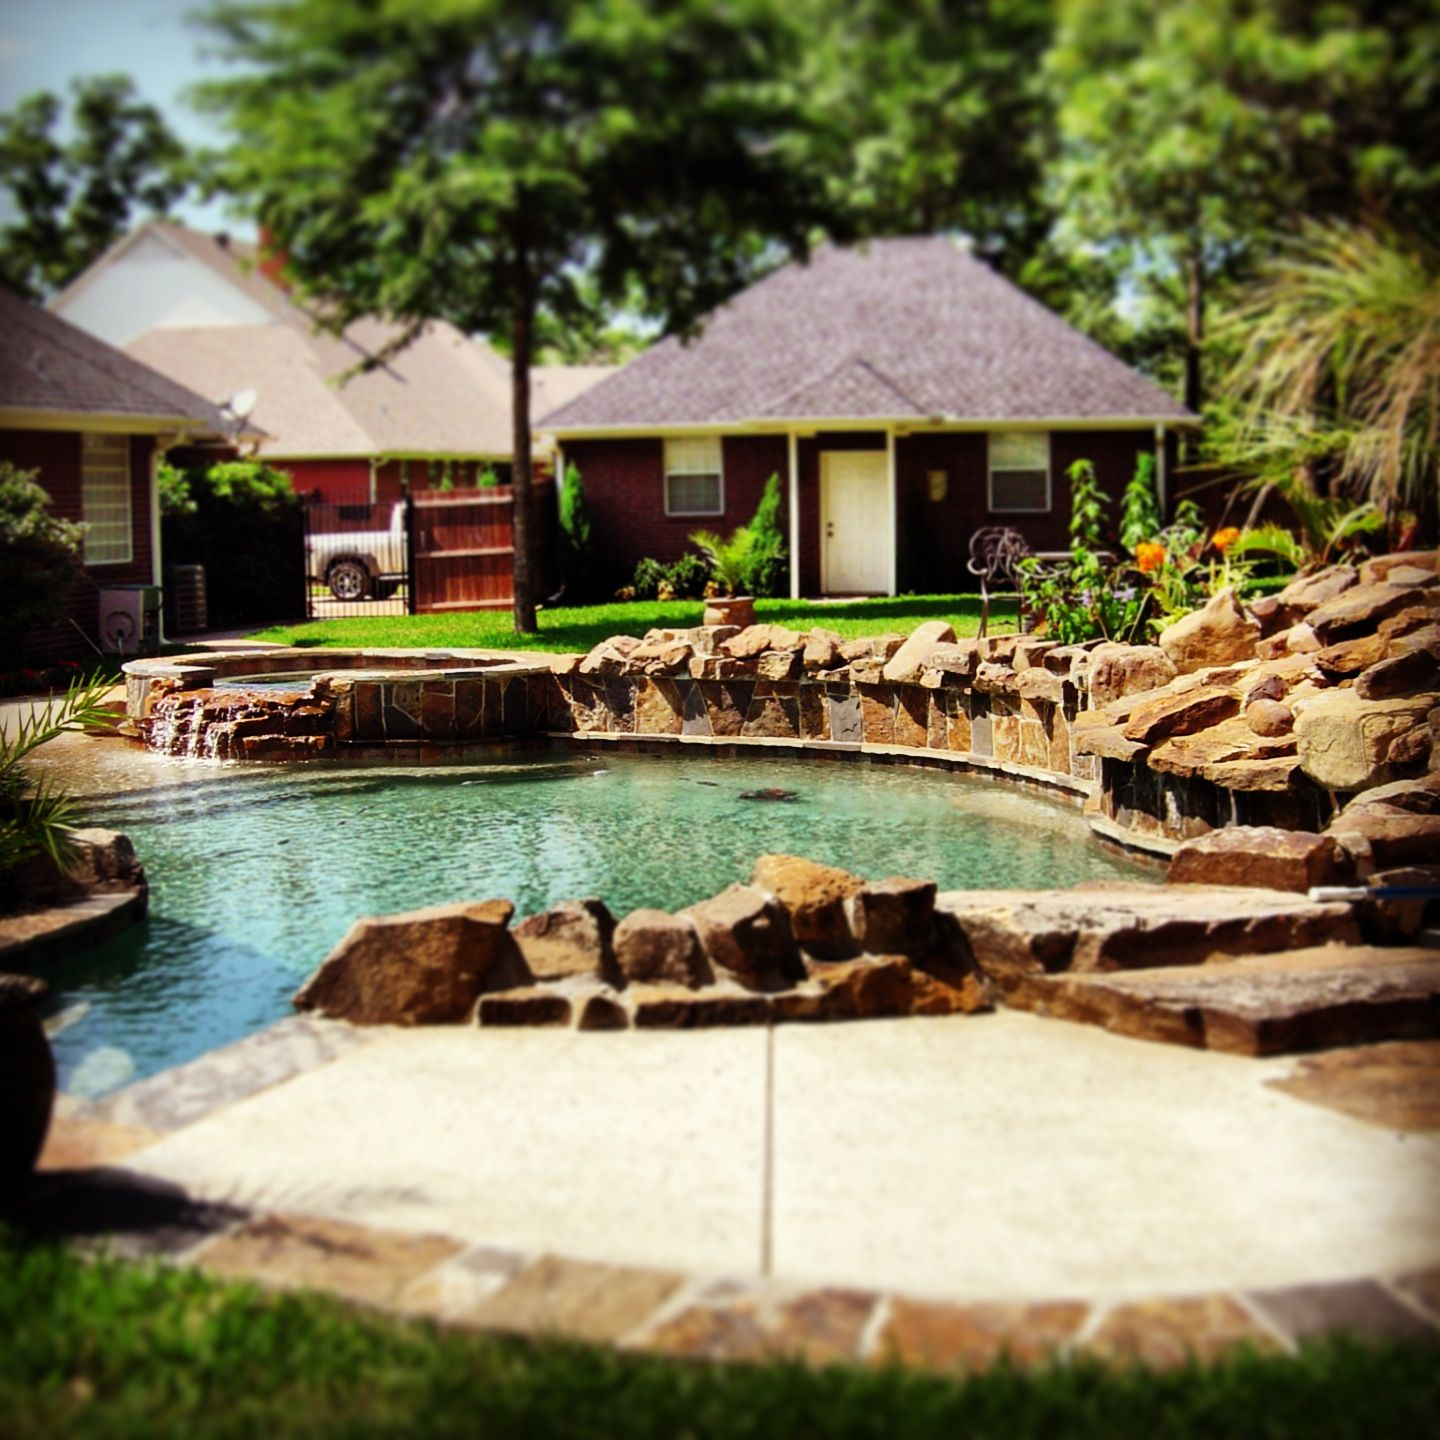 Lagoon style radius gunite pool custom designed and constructed by Preferred Pools; with spa hot tub and waterfall water feature.